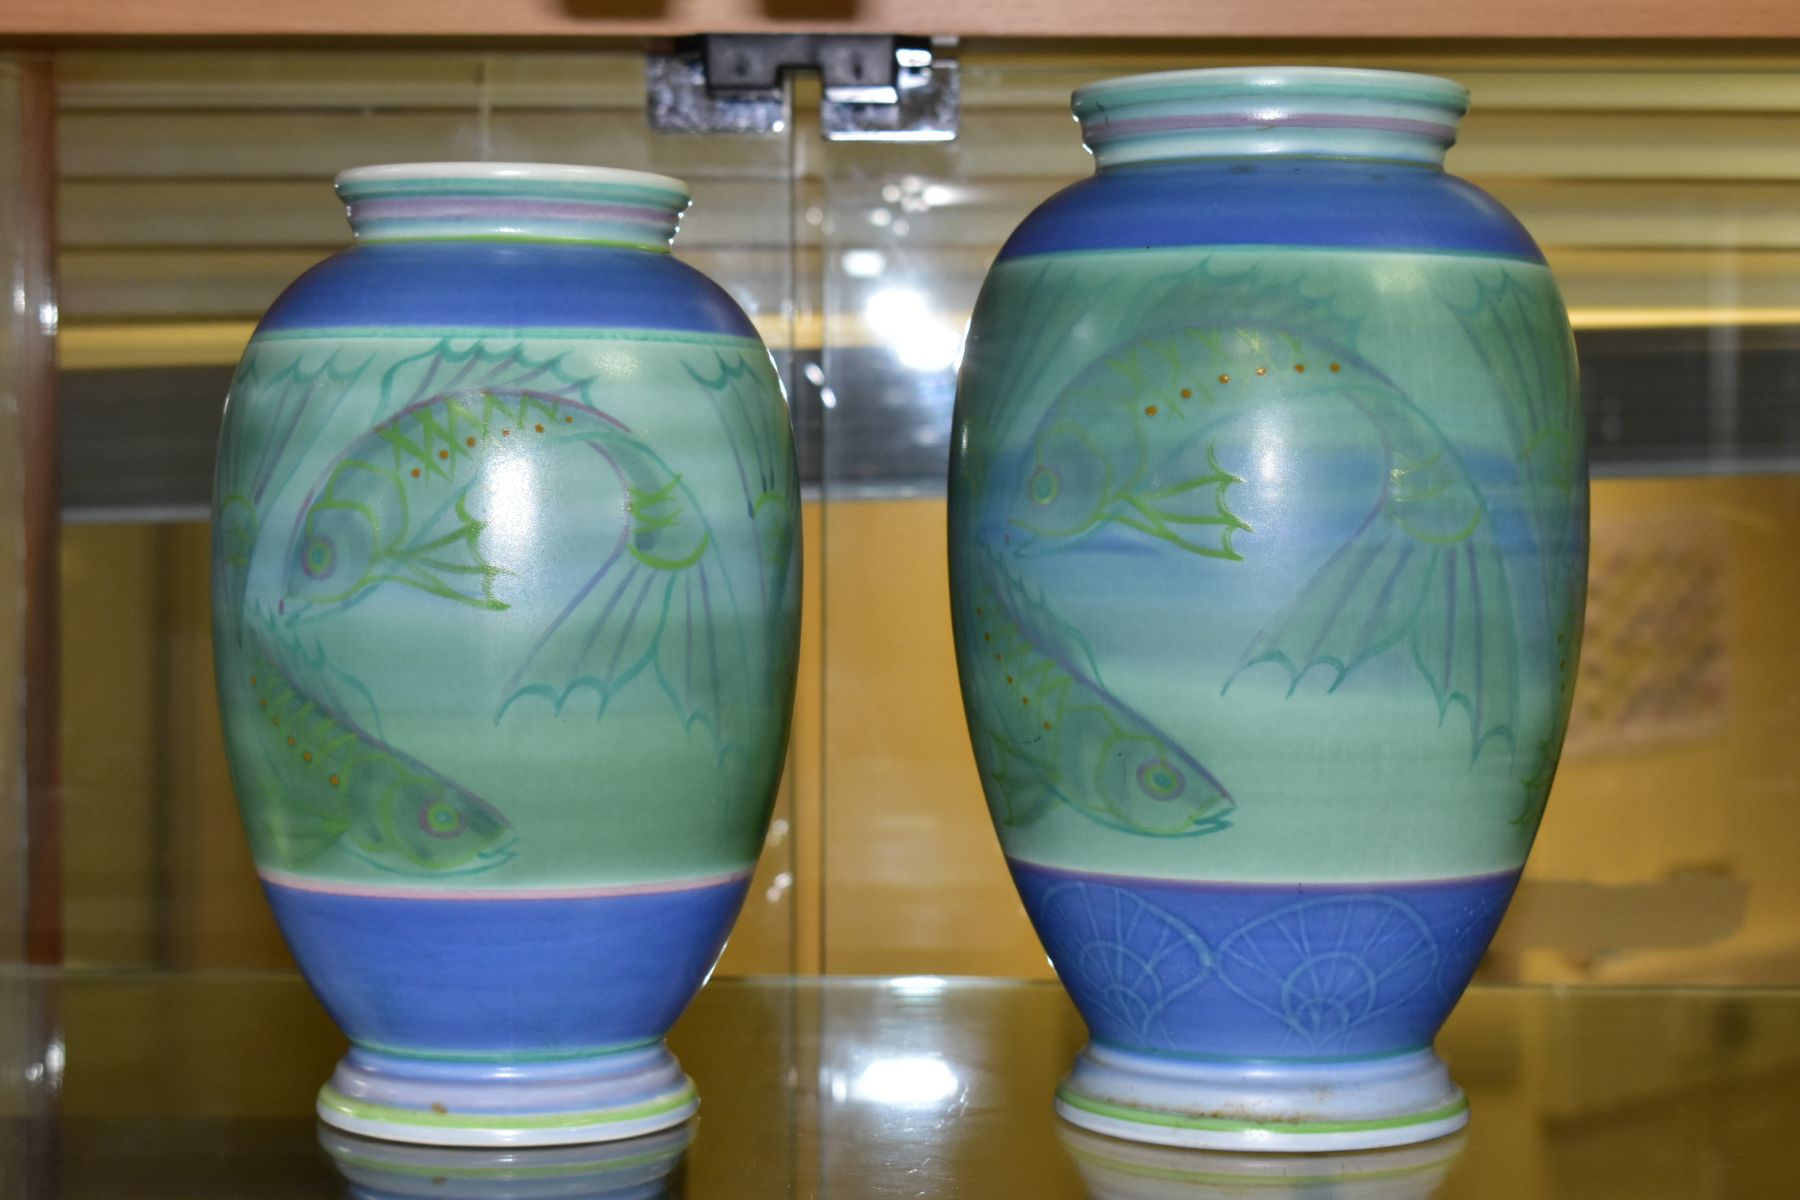 A POOLE STUDIO SALLY TUFFIN BALUSTER VASE AND MATCHING JAR, the baluster vase handpainted with bands - Image 3 of 7